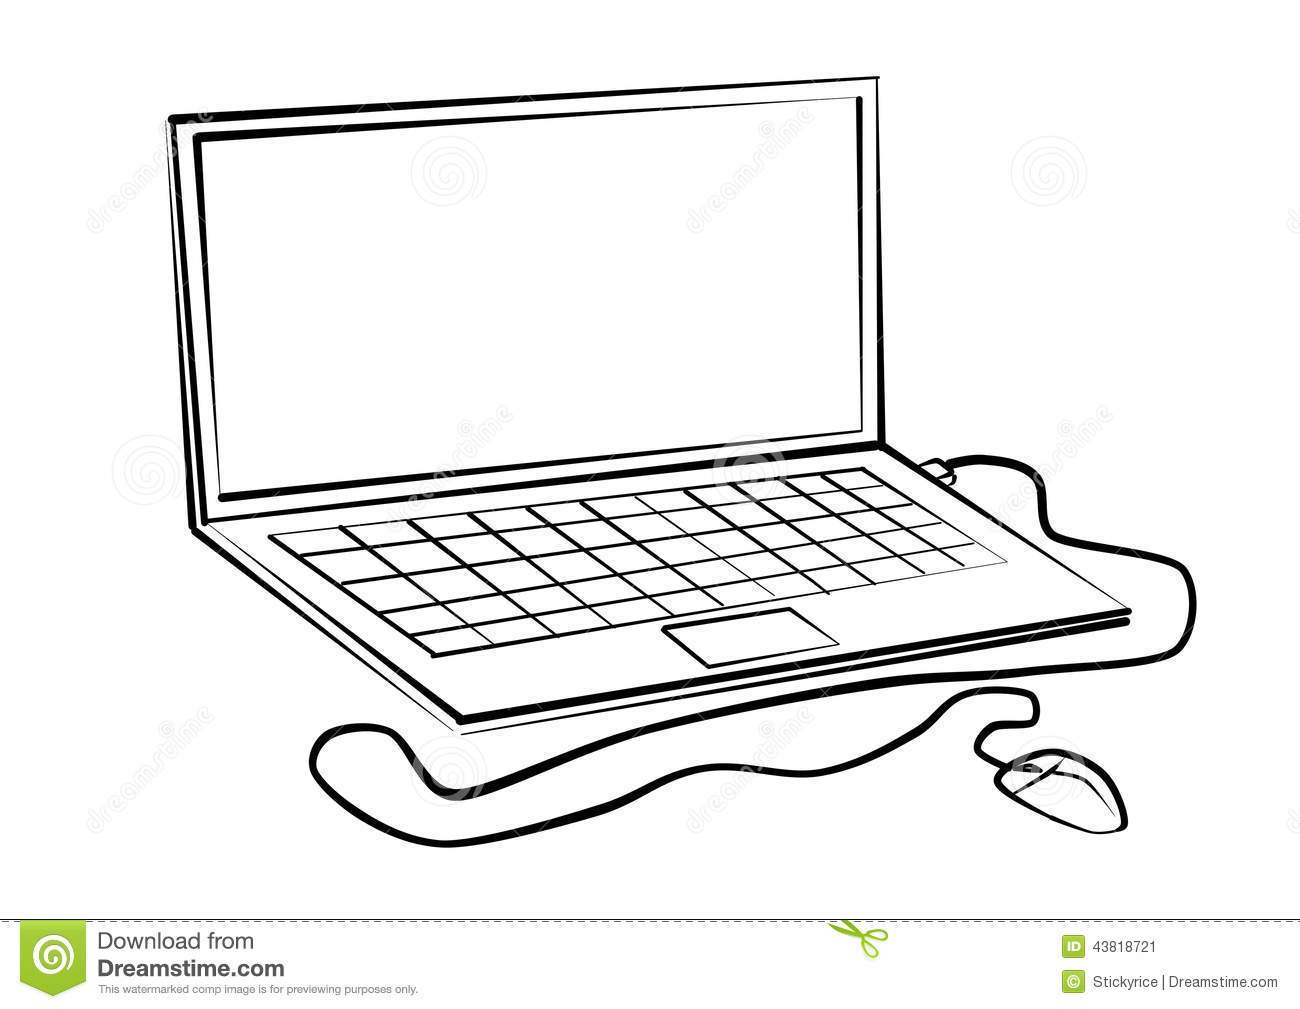 Drawing Lines With Mouse In Java : Labtop line drawings stock image of notebook